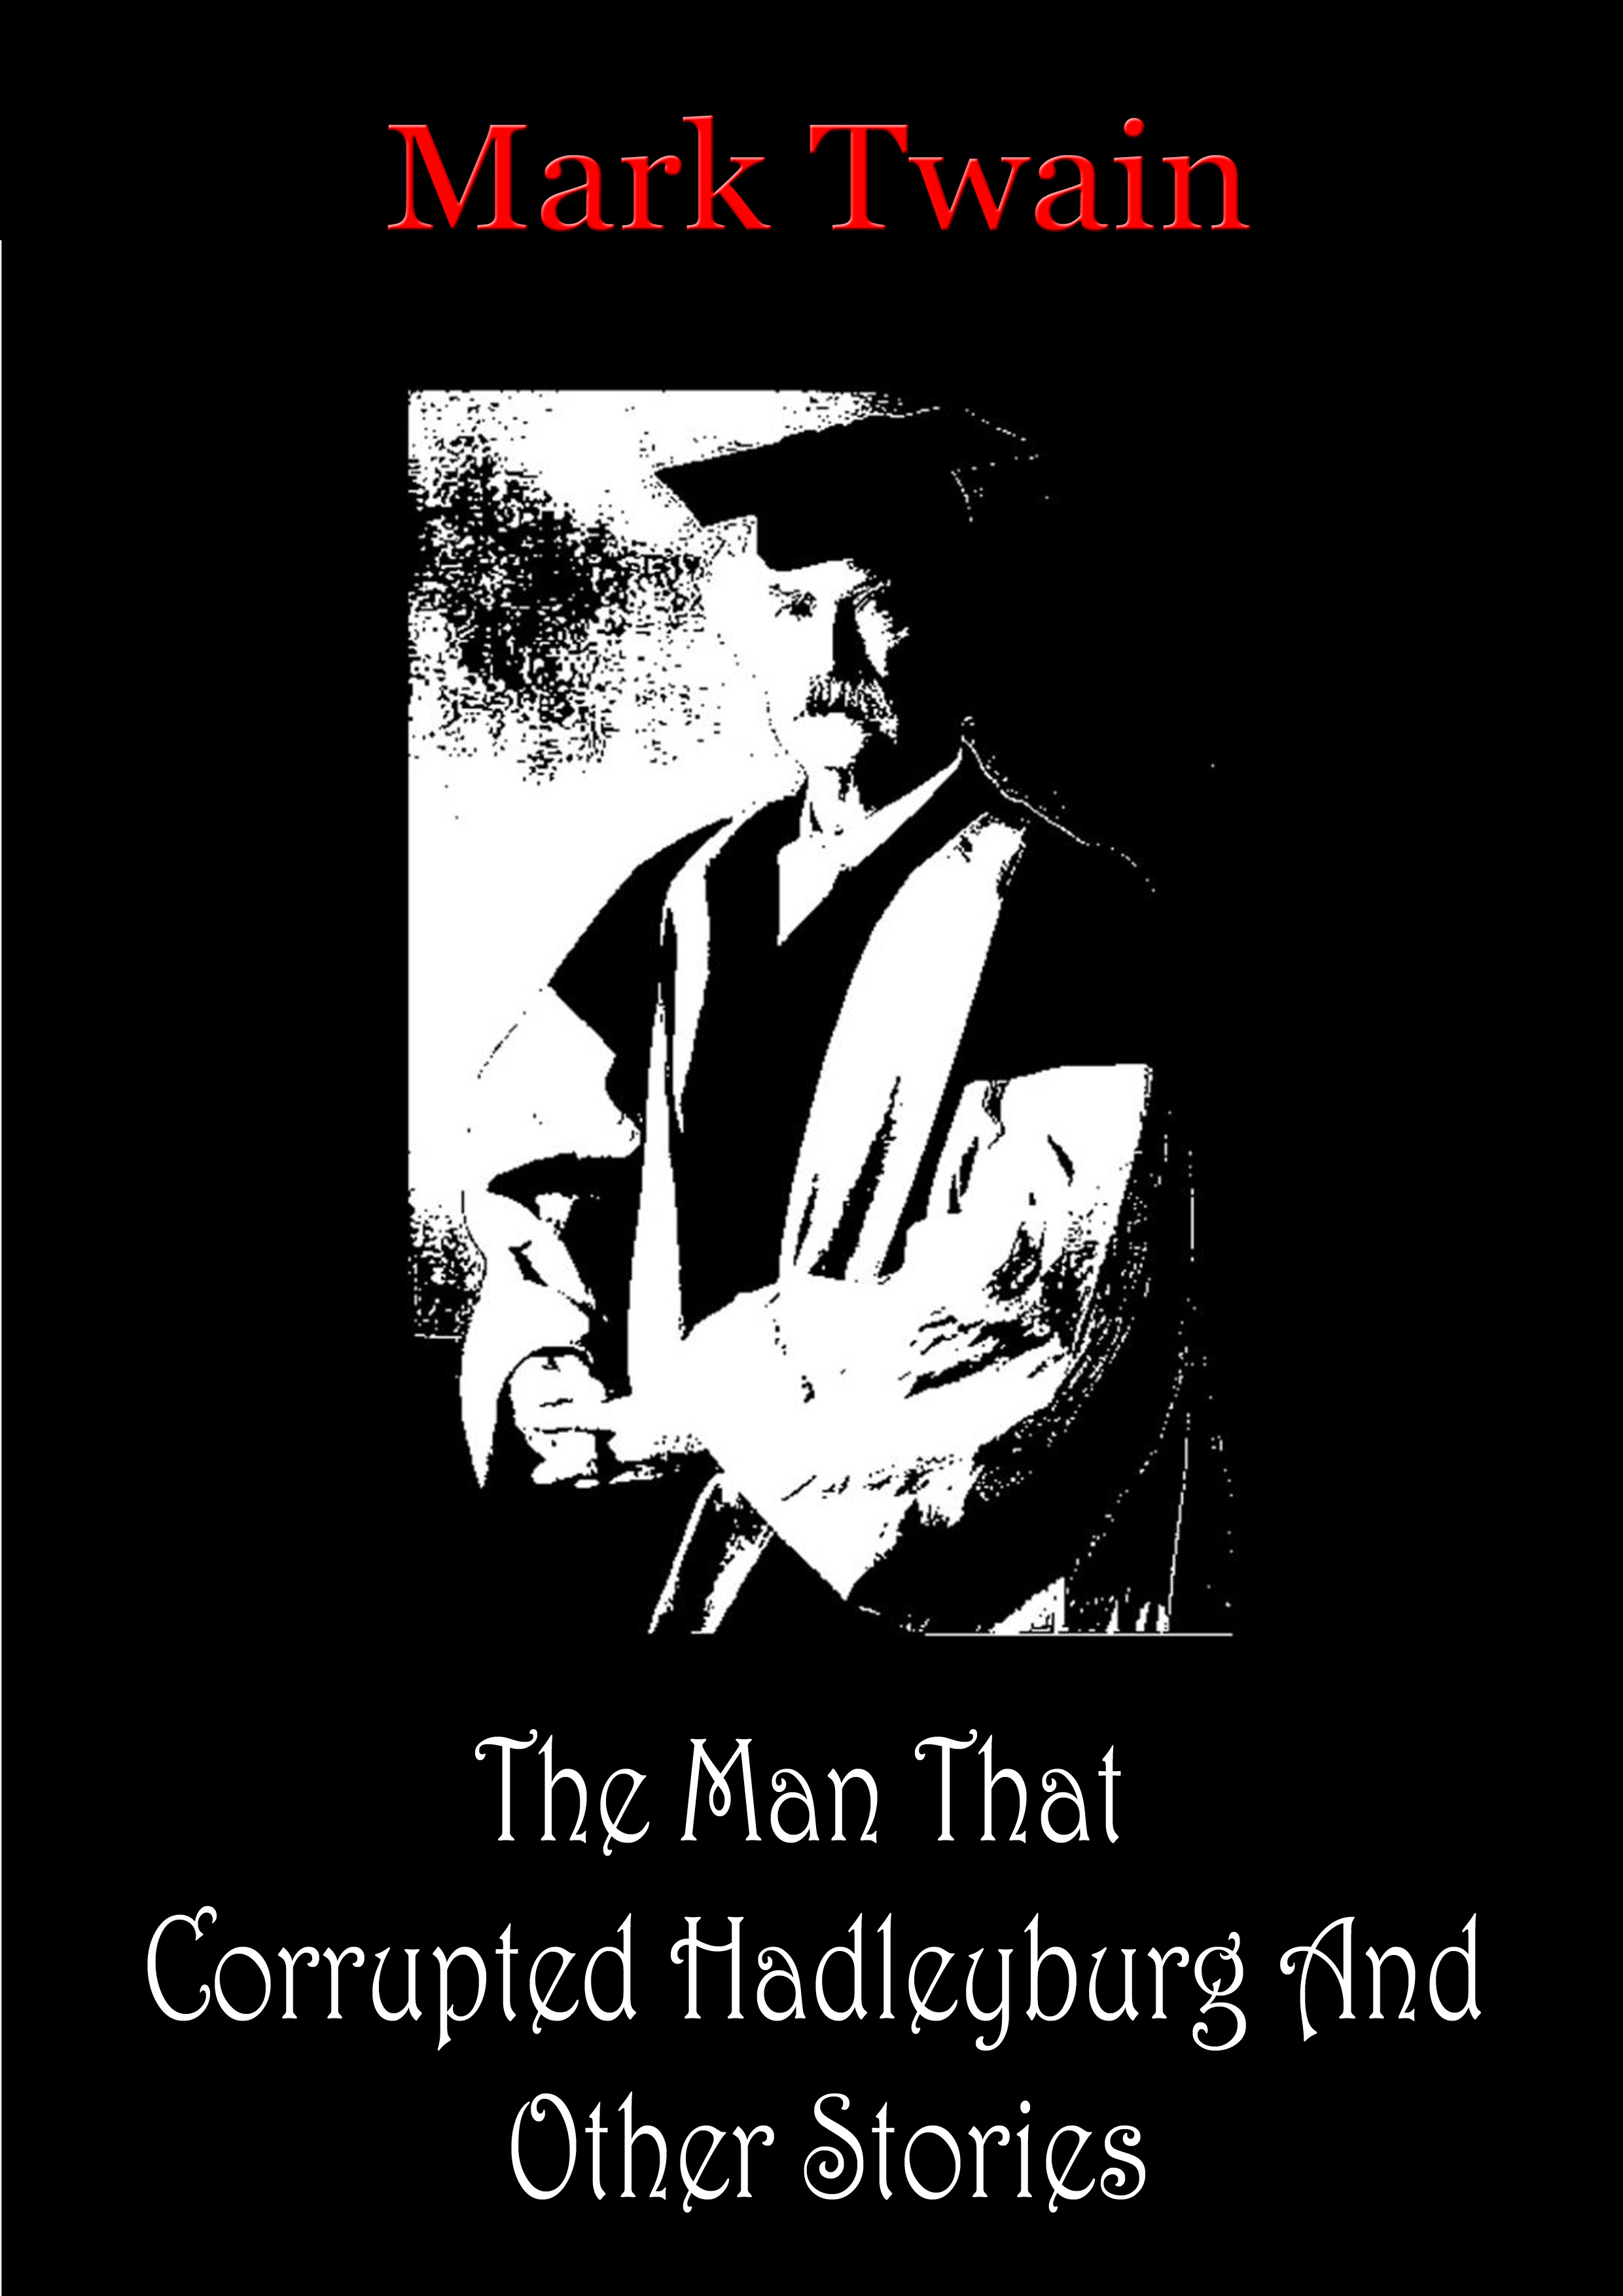 The Man That Corrupted Hadleyburg And Other Stories By: Mark Twain